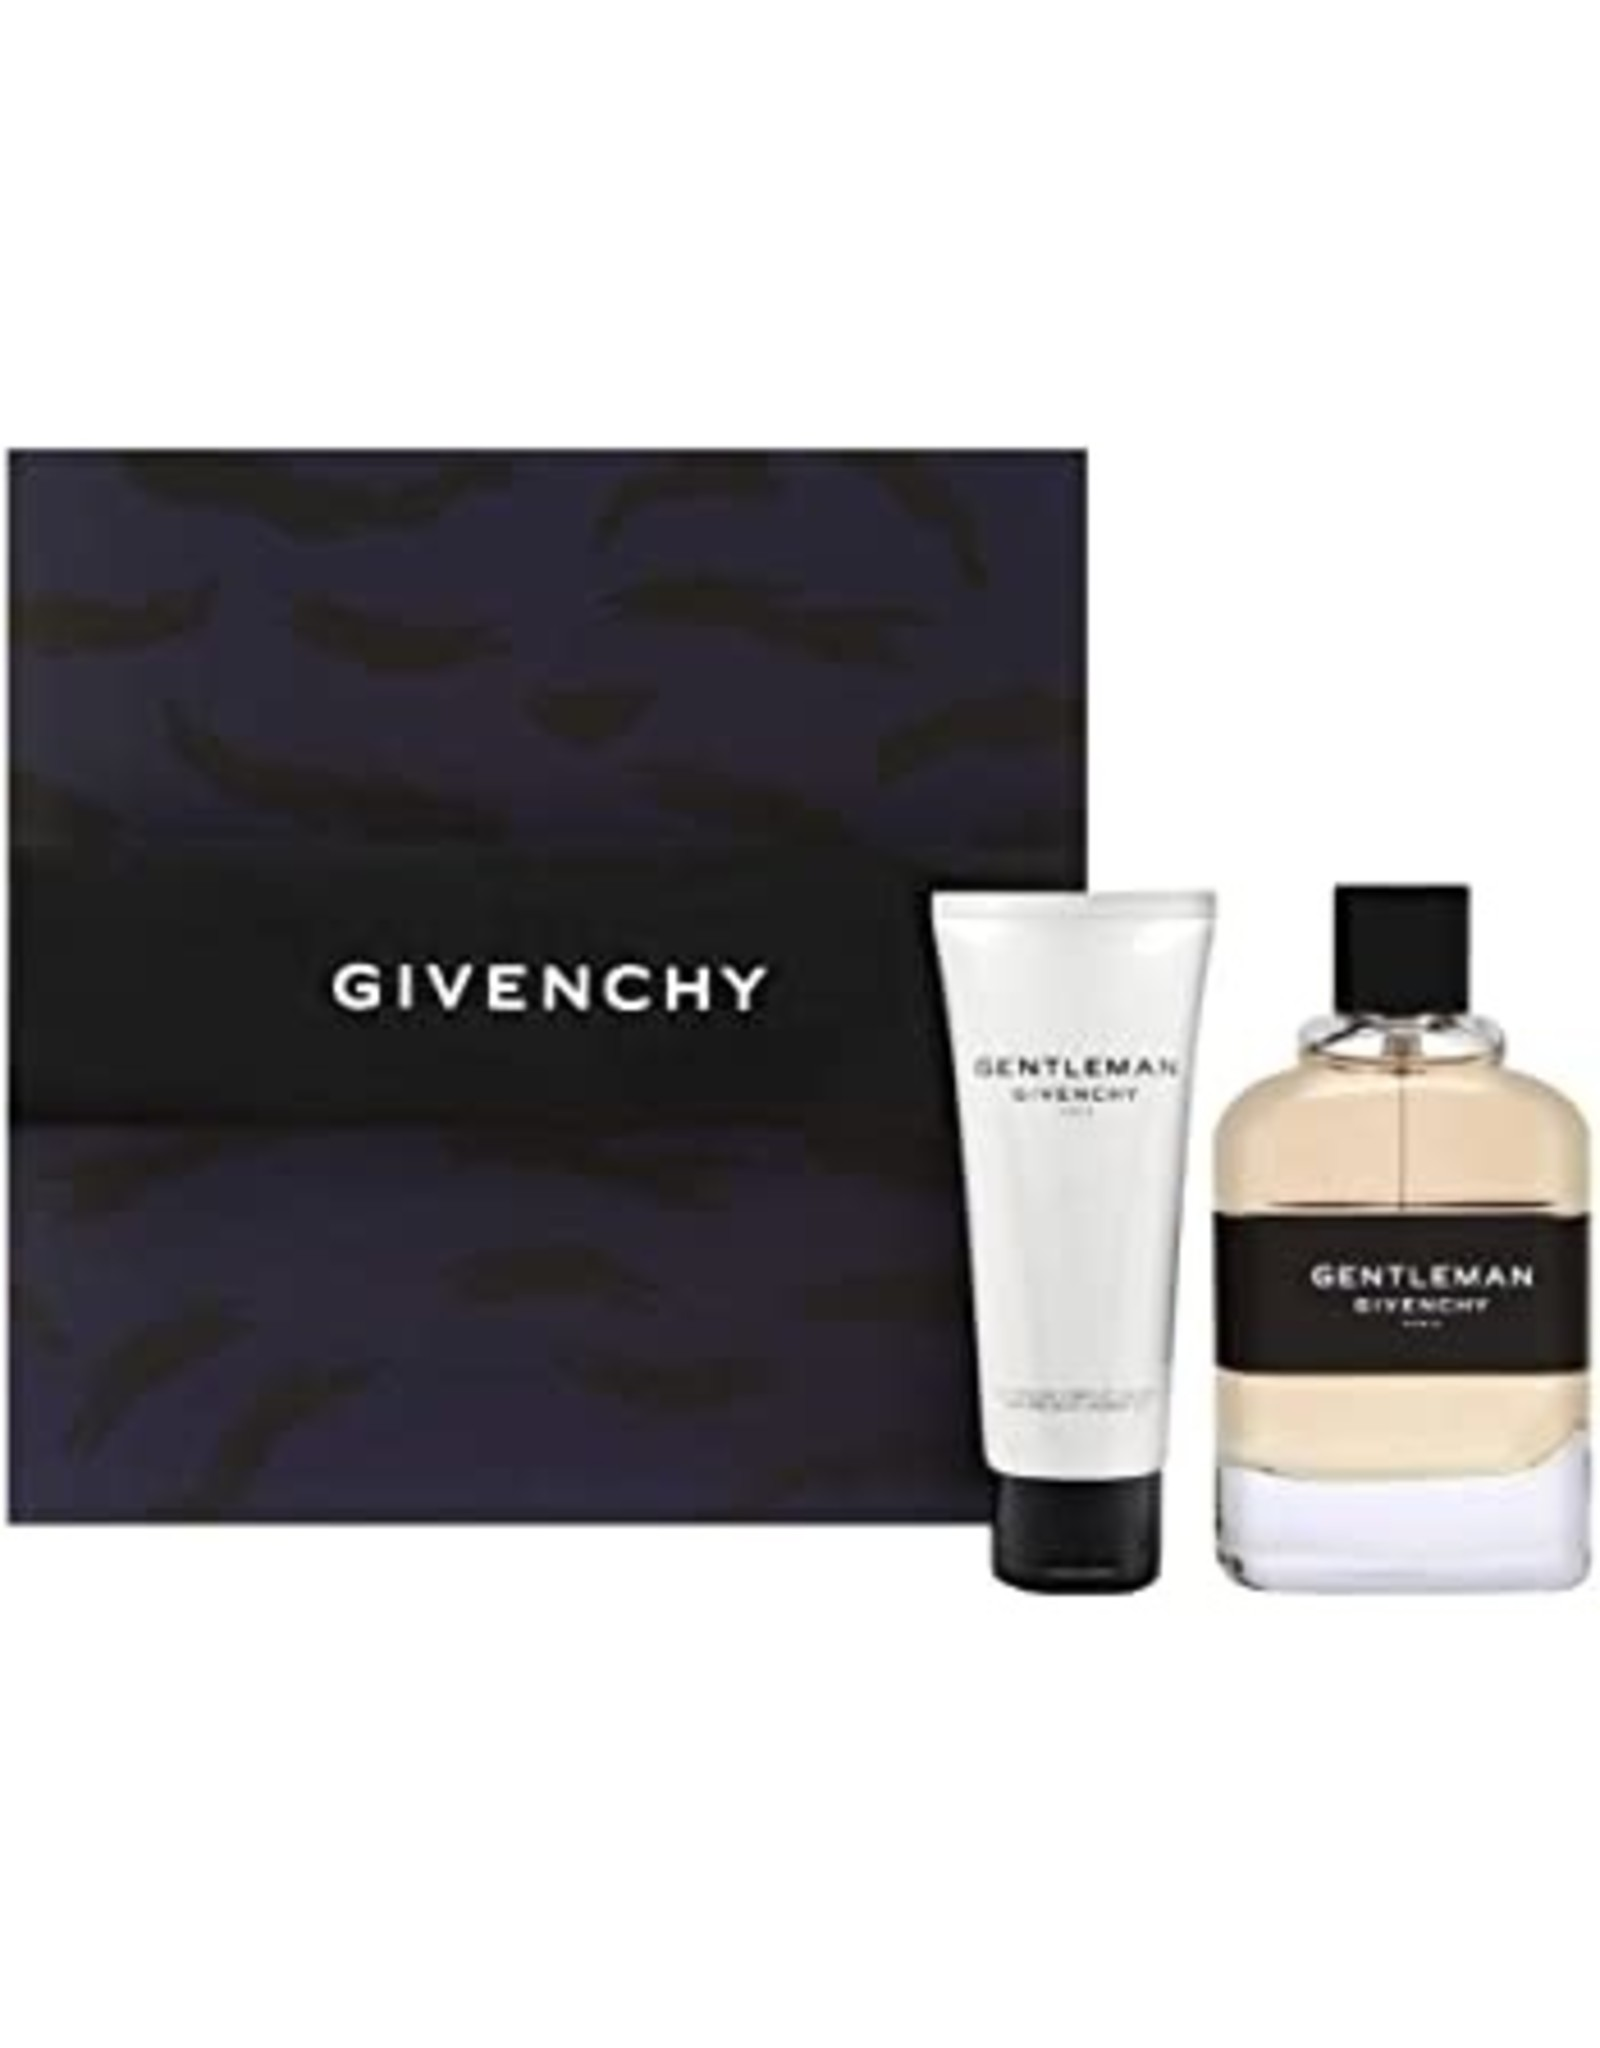 GIVENCHY GIVENCHY GENTLEMAN (2017) 2pc Set